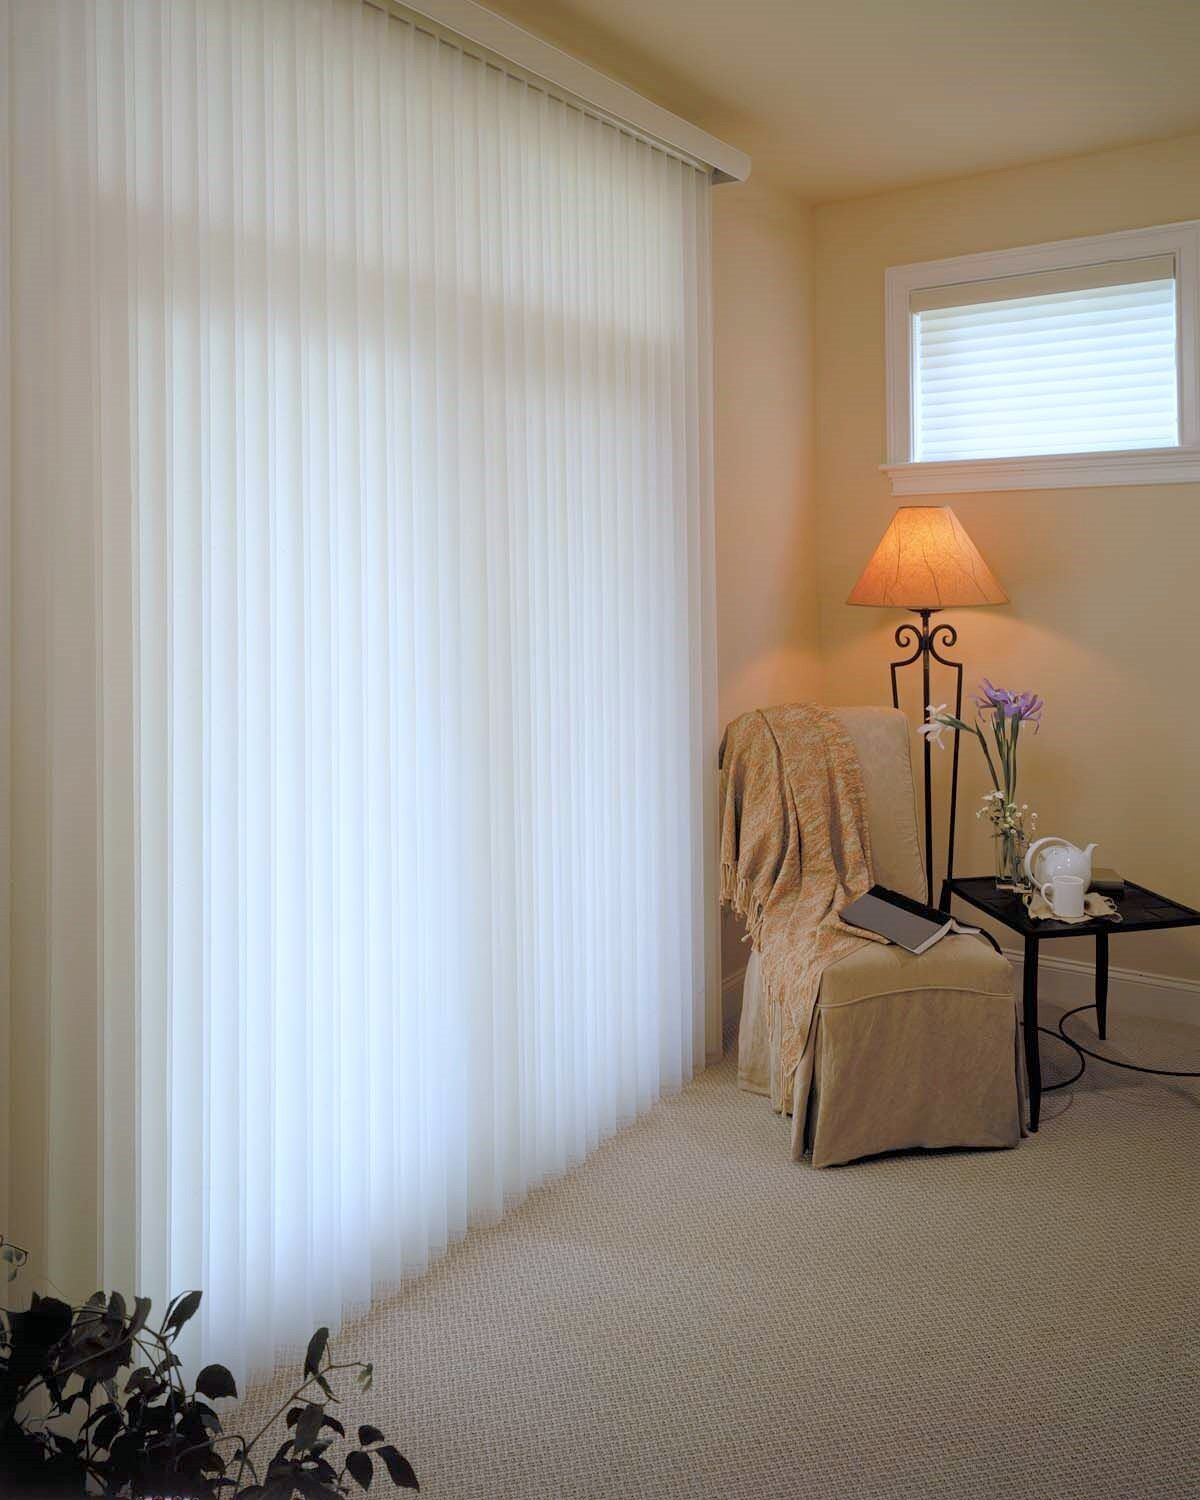 5 Curtain Ideas For Bay Windows Curtains Up Blog: The Best Vertical Blinds Alternatives For Sliding Glass